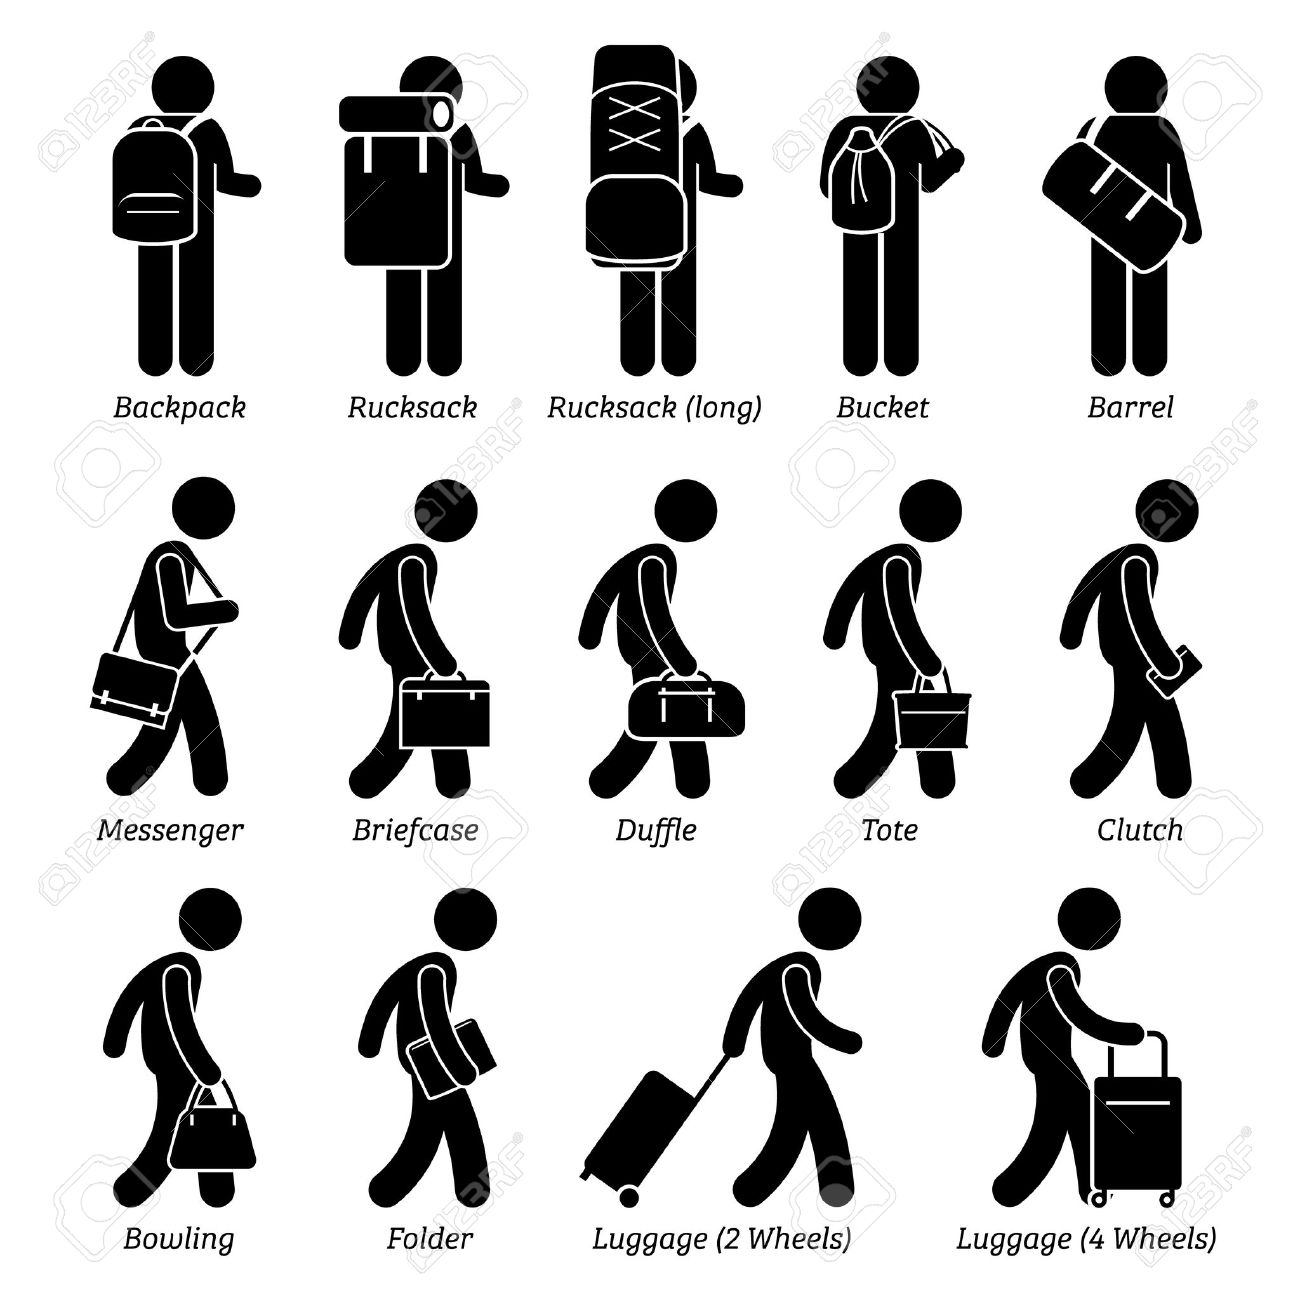 Man Male Bags and Luggage Stick Figure Pictogram Icons - 50581400